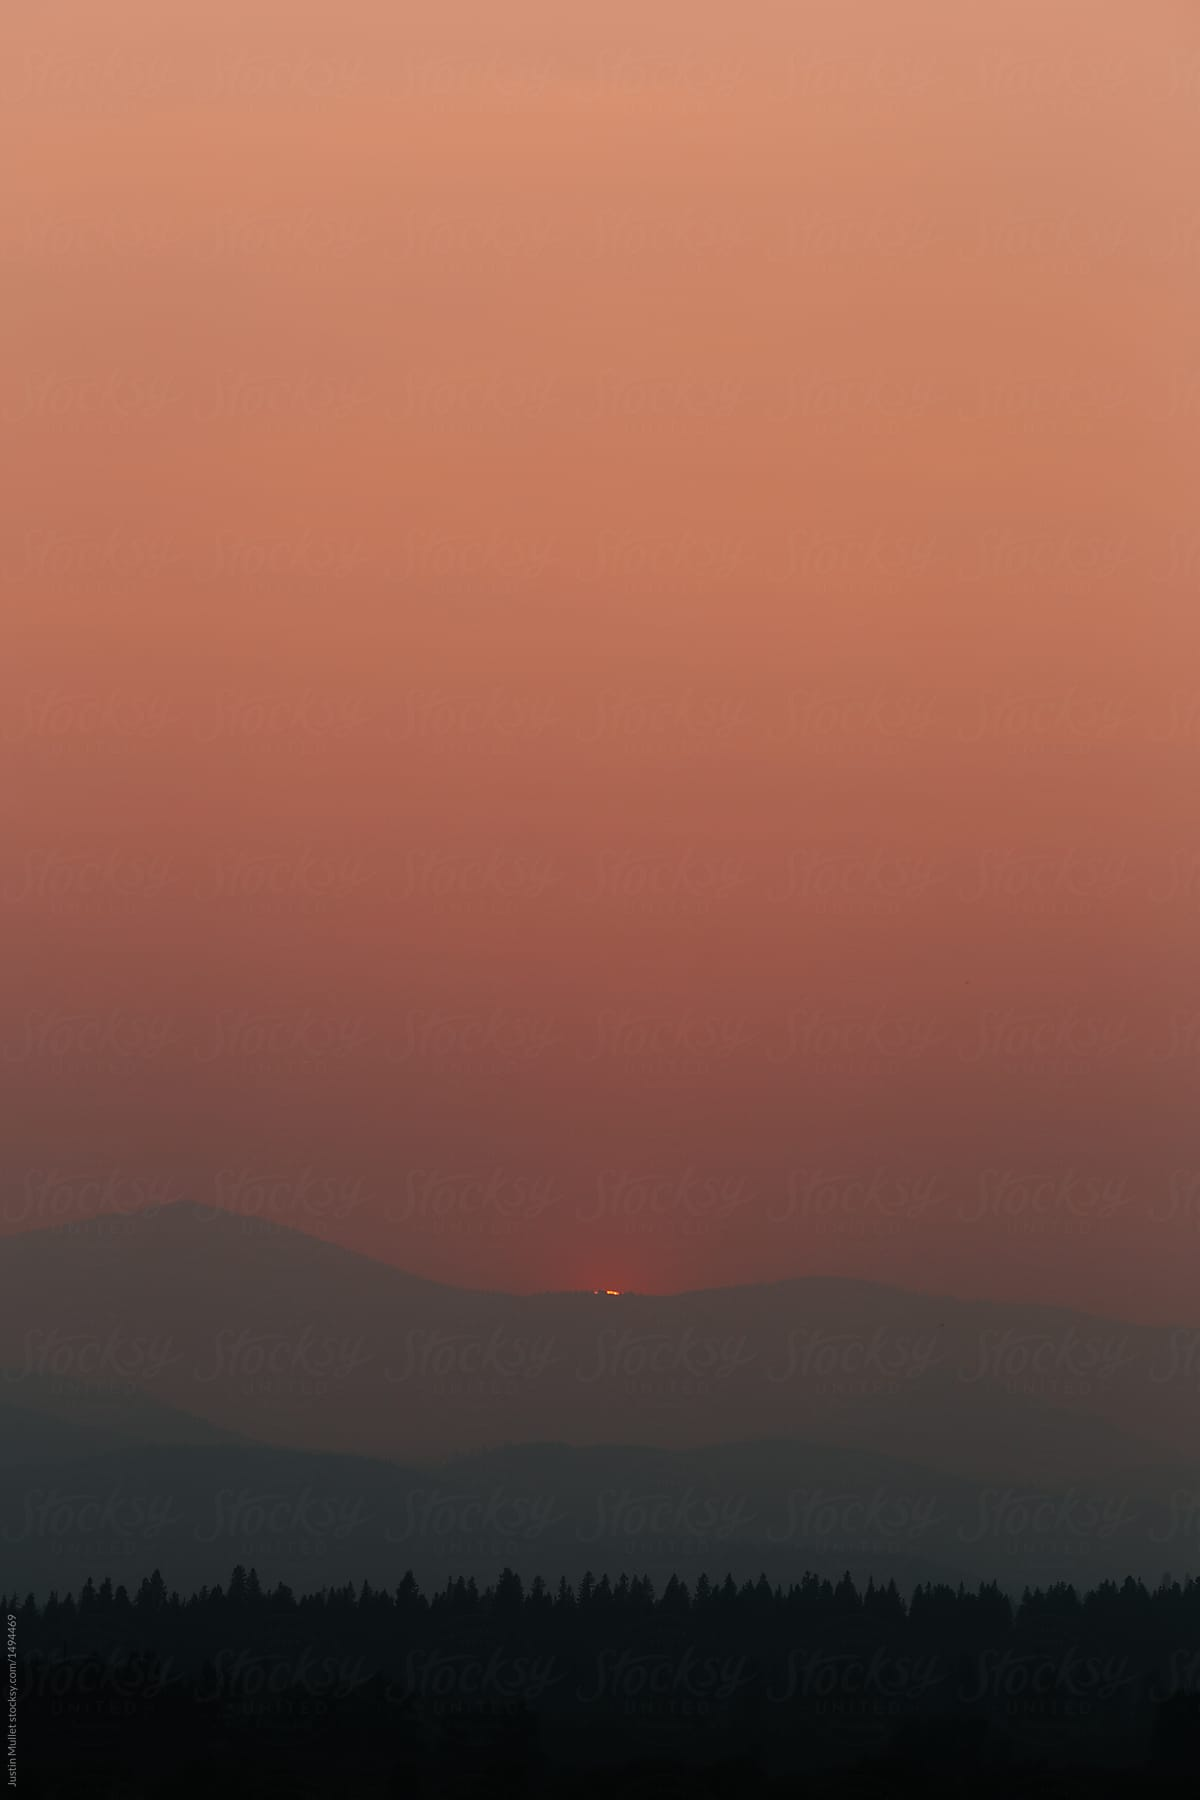 Smoky Sunset Gradient Stocksy United